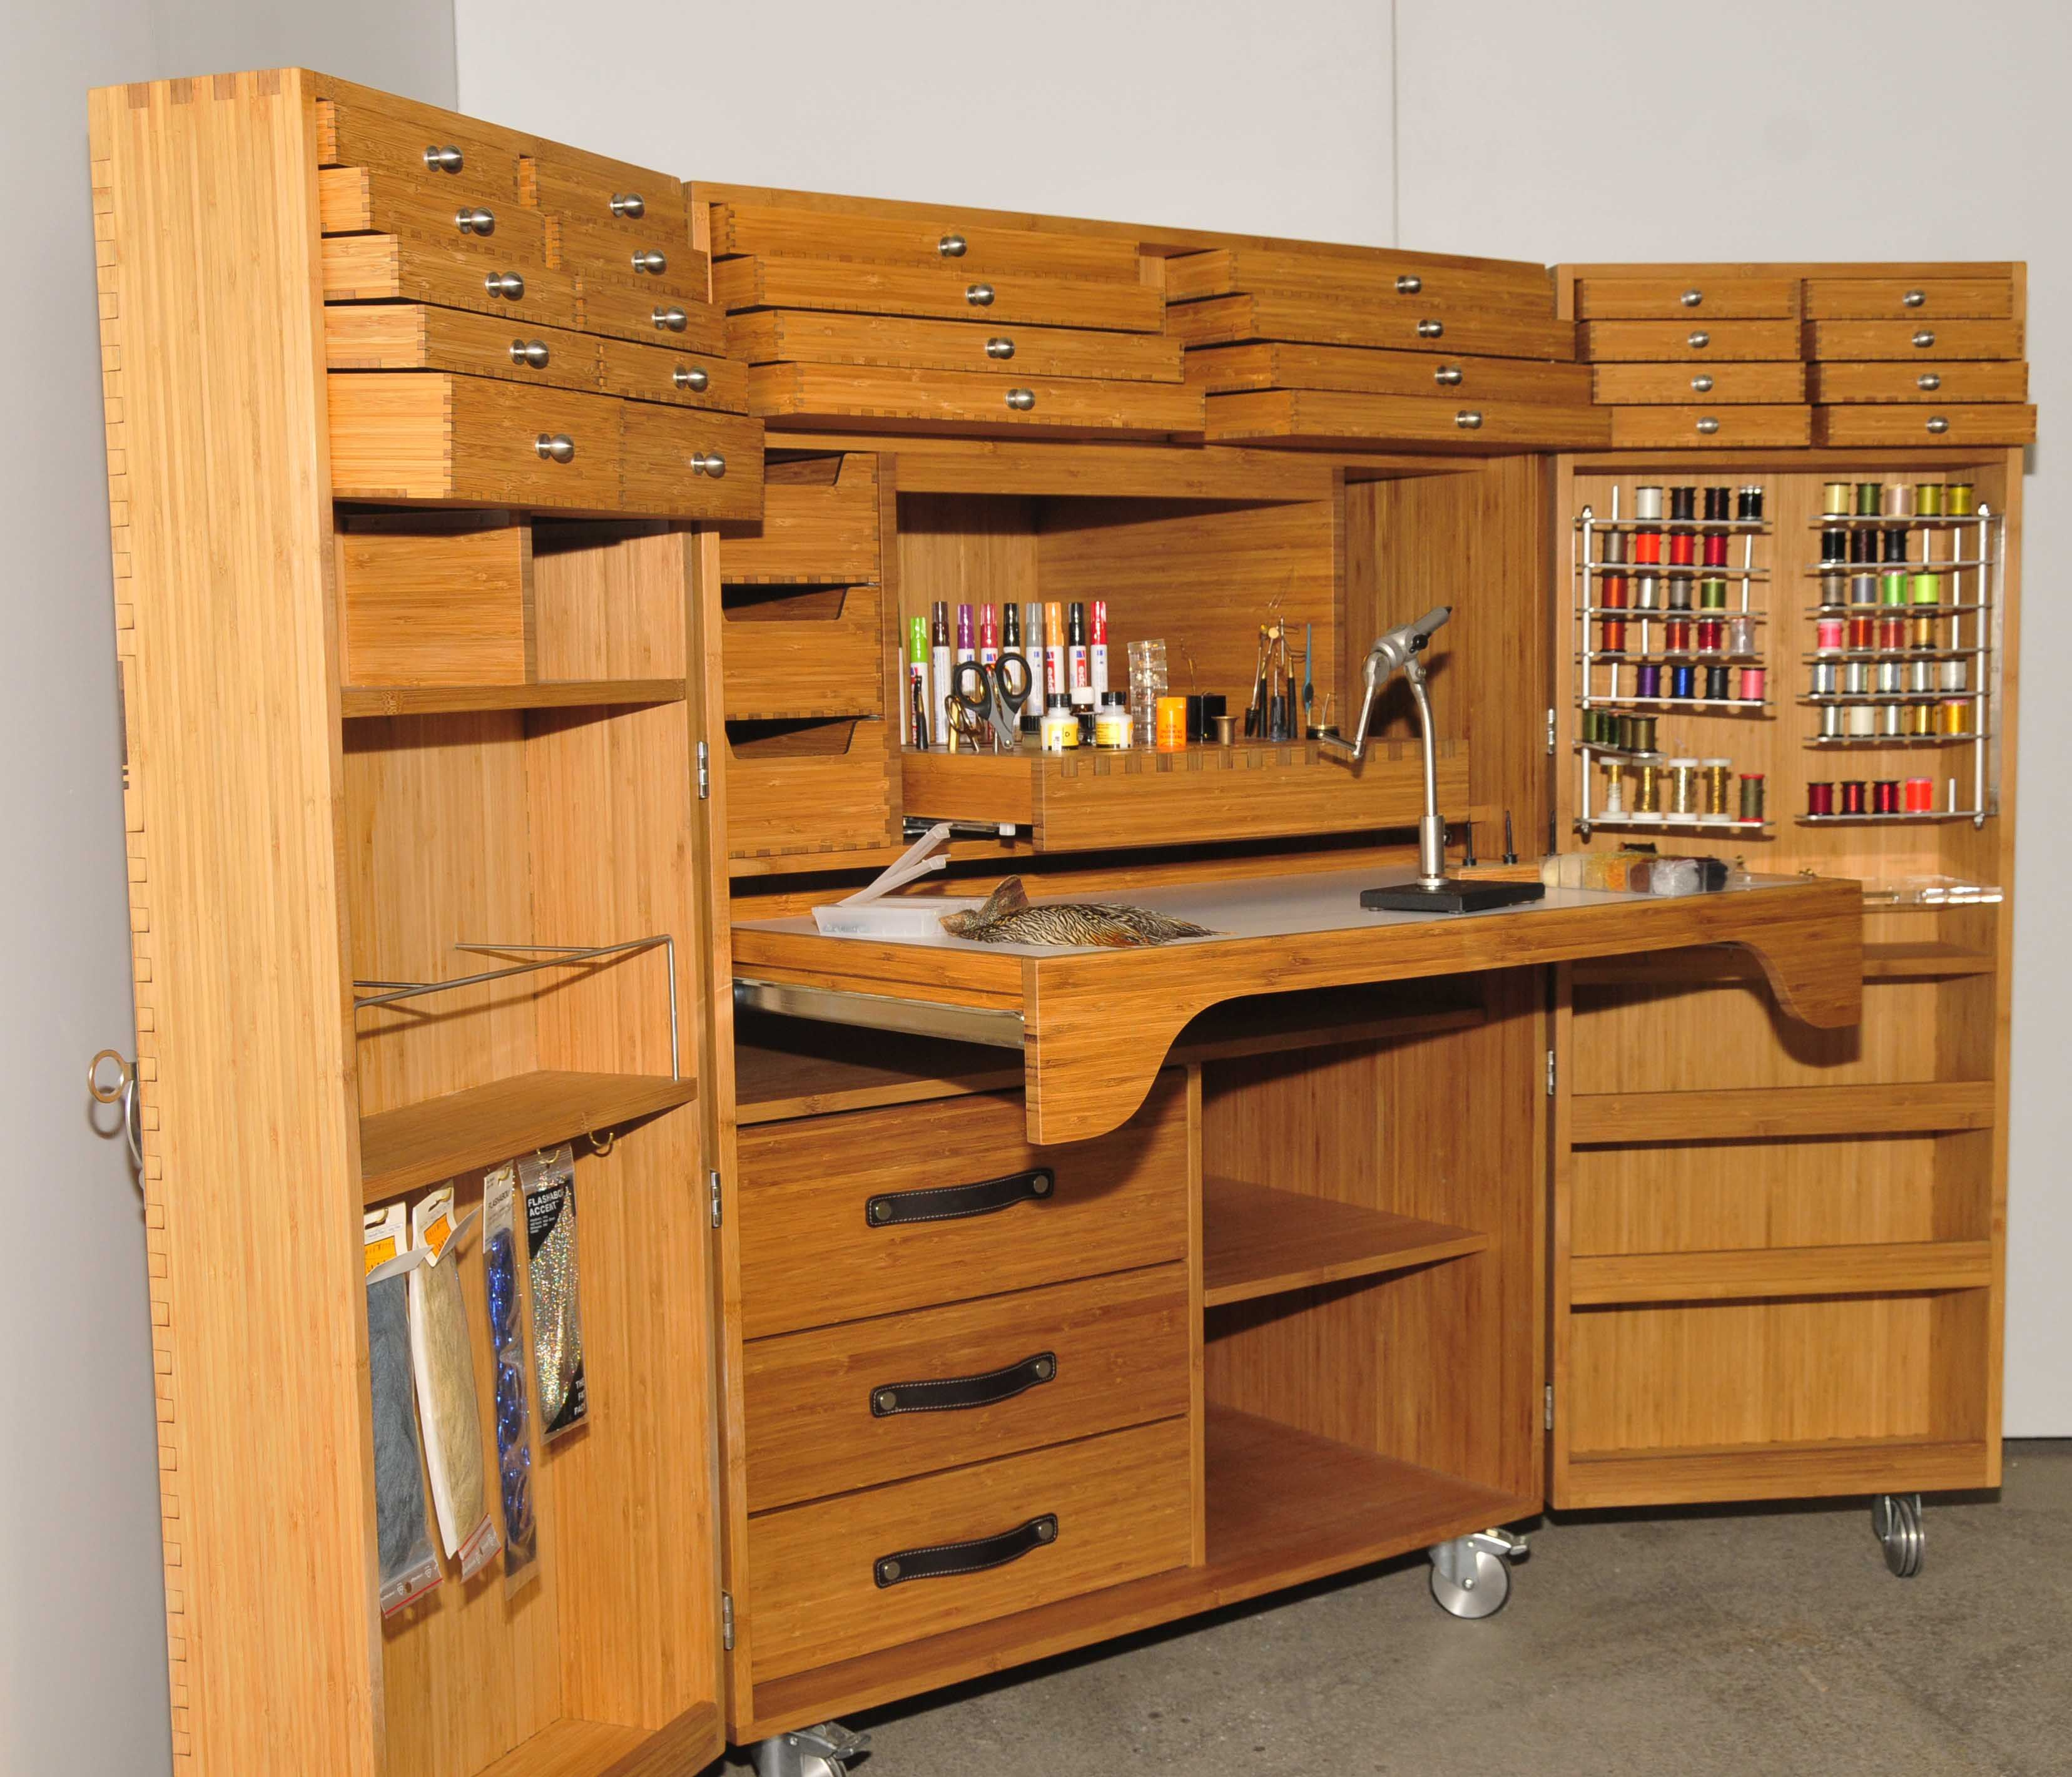 Image Result For Best Woodshop Large Material Storage: Fly Tying Desk, Fly Tying